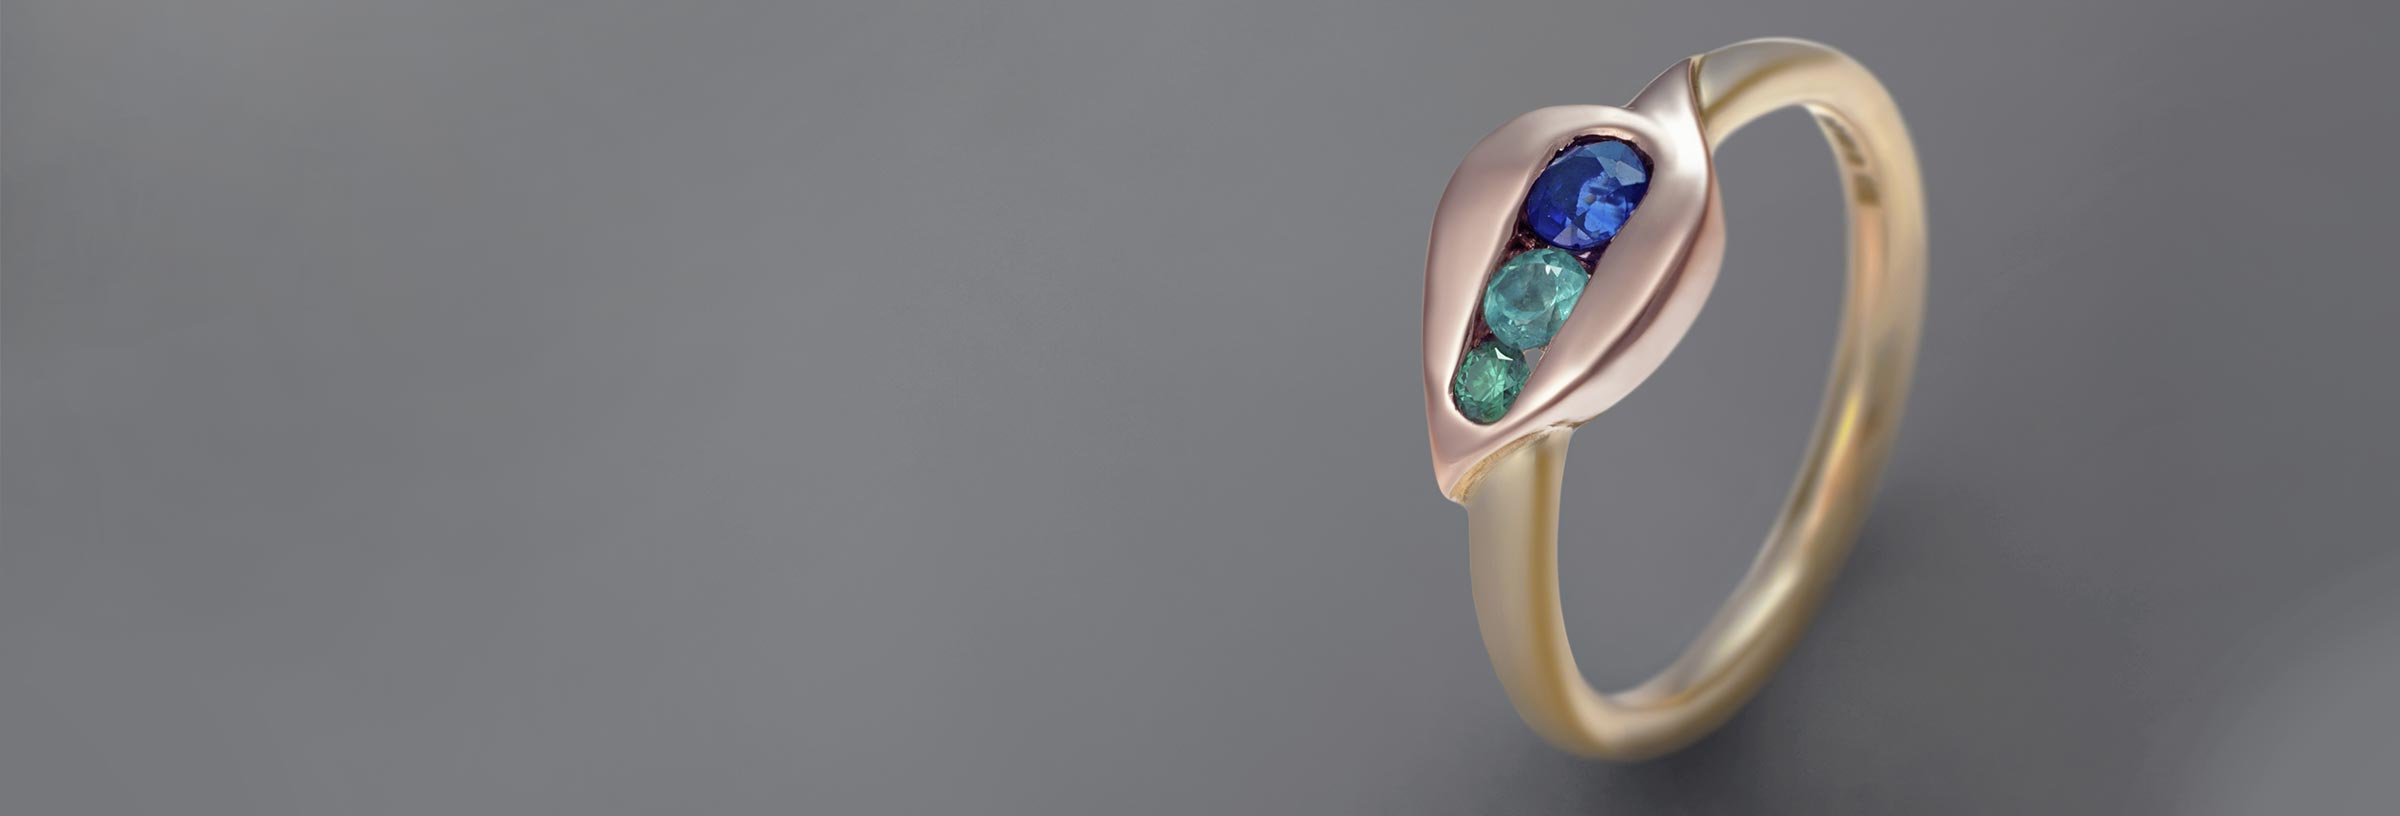 alexandrite nouveau ring sterling silver hand rings wedding woodland right unique art media engagement